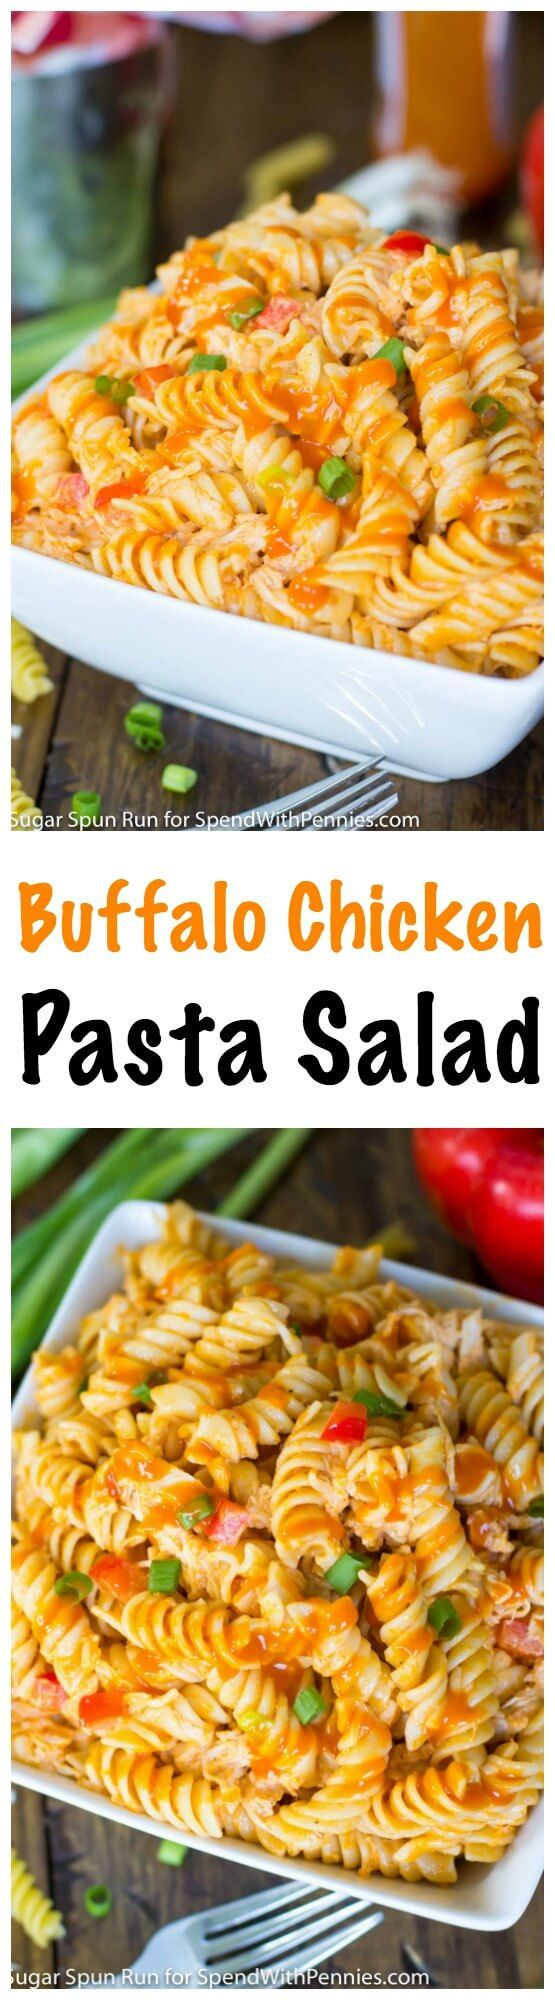 Pack a little extra heat (and a lot more flavor) into your summer cookout with this easy to make Buffalo Chicken Pasta Salad!  This easy pasta salad is sure to be the most popular dish at any get-together!: